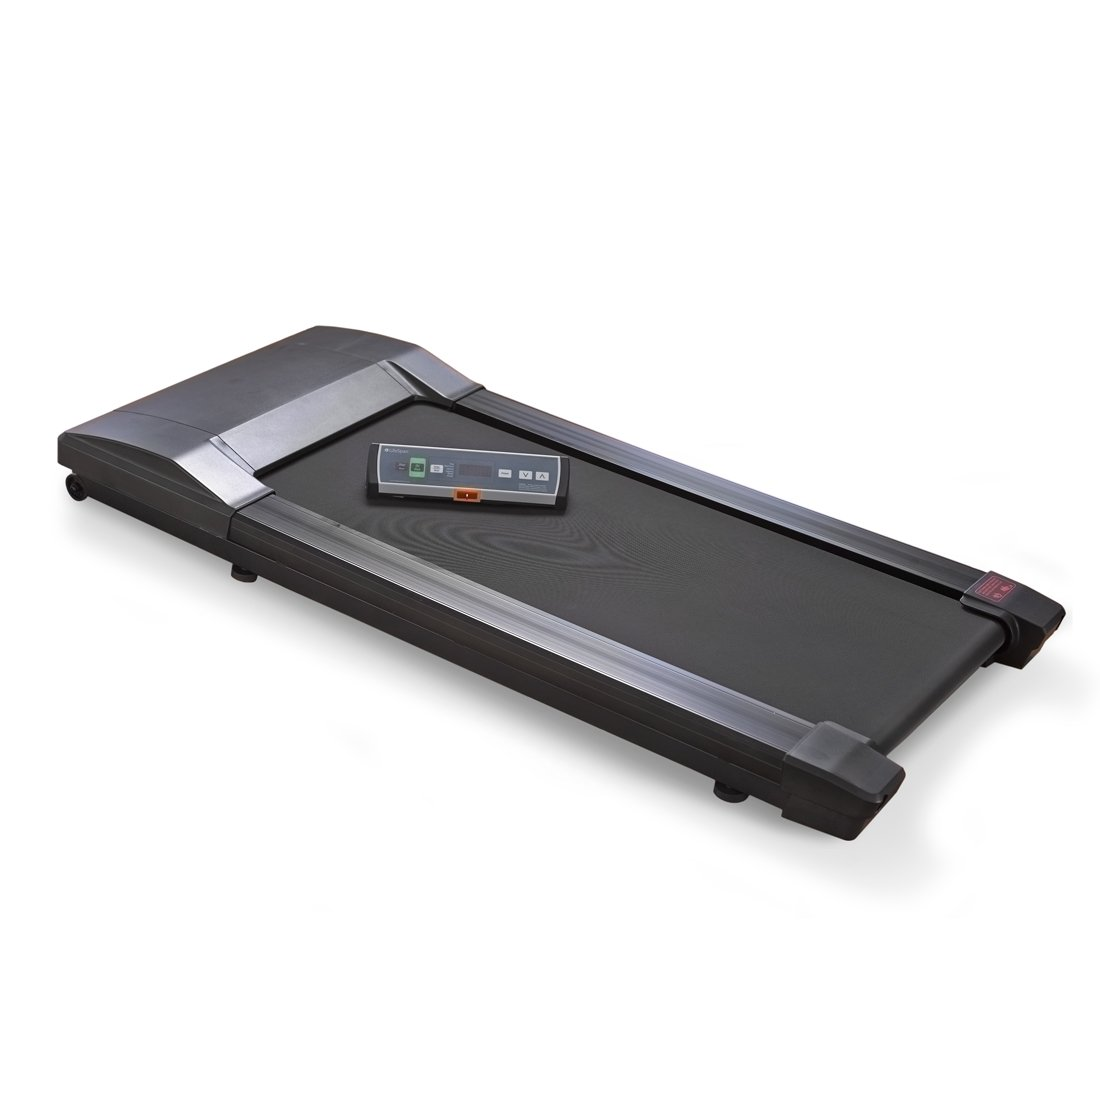 LifeSpan TR800 – DT3 Under Desk Treadmill - walking treadmill for use with stand up desk